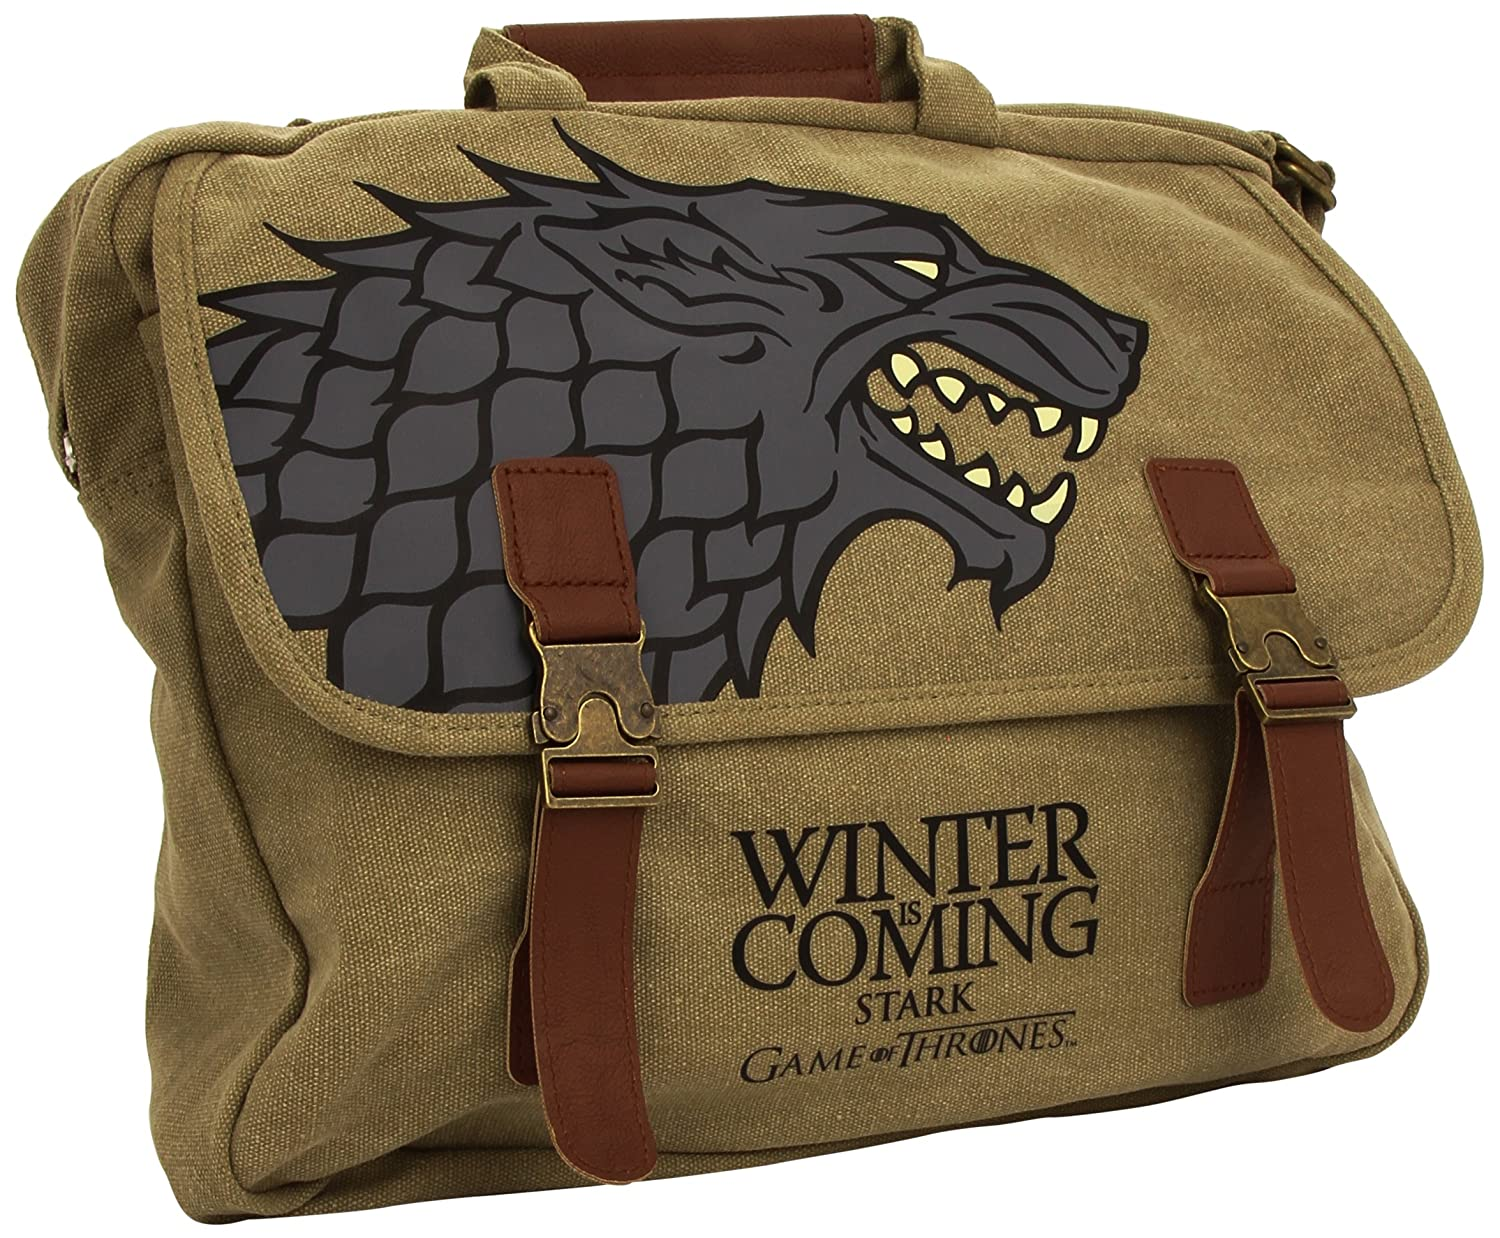 SD Toys Unisex Umhä ngetasche Game of Thrones Umhä ngetasche Stark Mehrfarbig SDTHBO02297